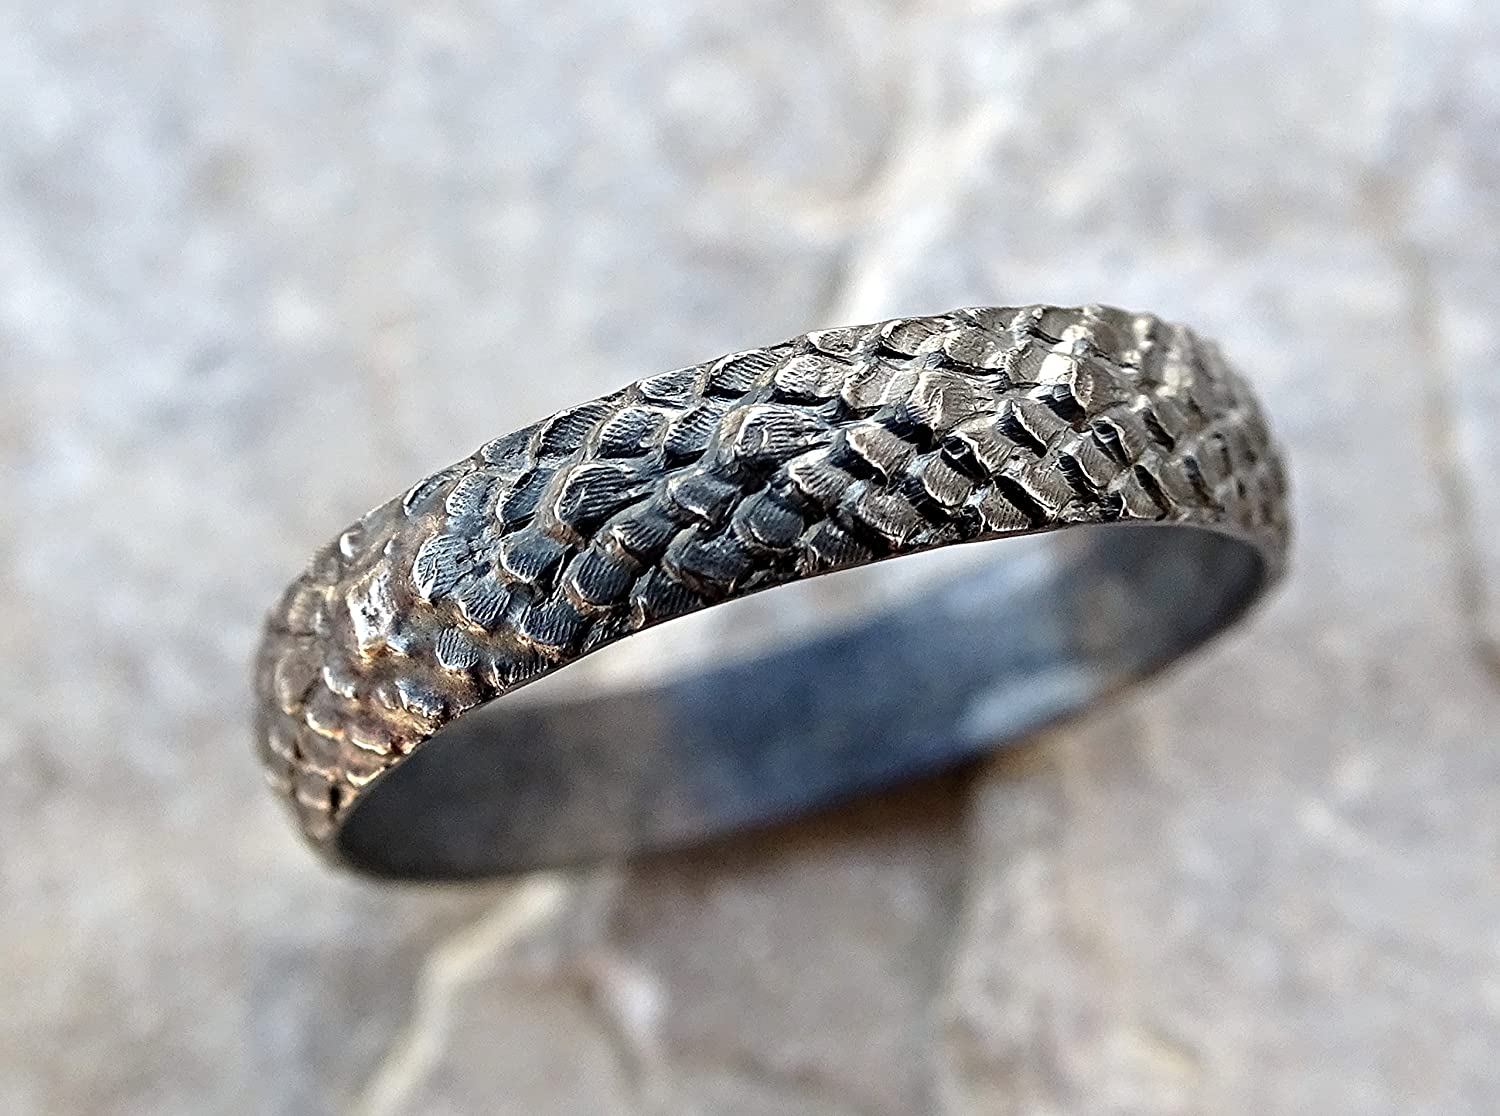 Amazon Dragon Scale Ring Silver Feather Medieval Wedding Band Black Pagan Snake Skin: Wedding Rings In Skin At Websimilar.org